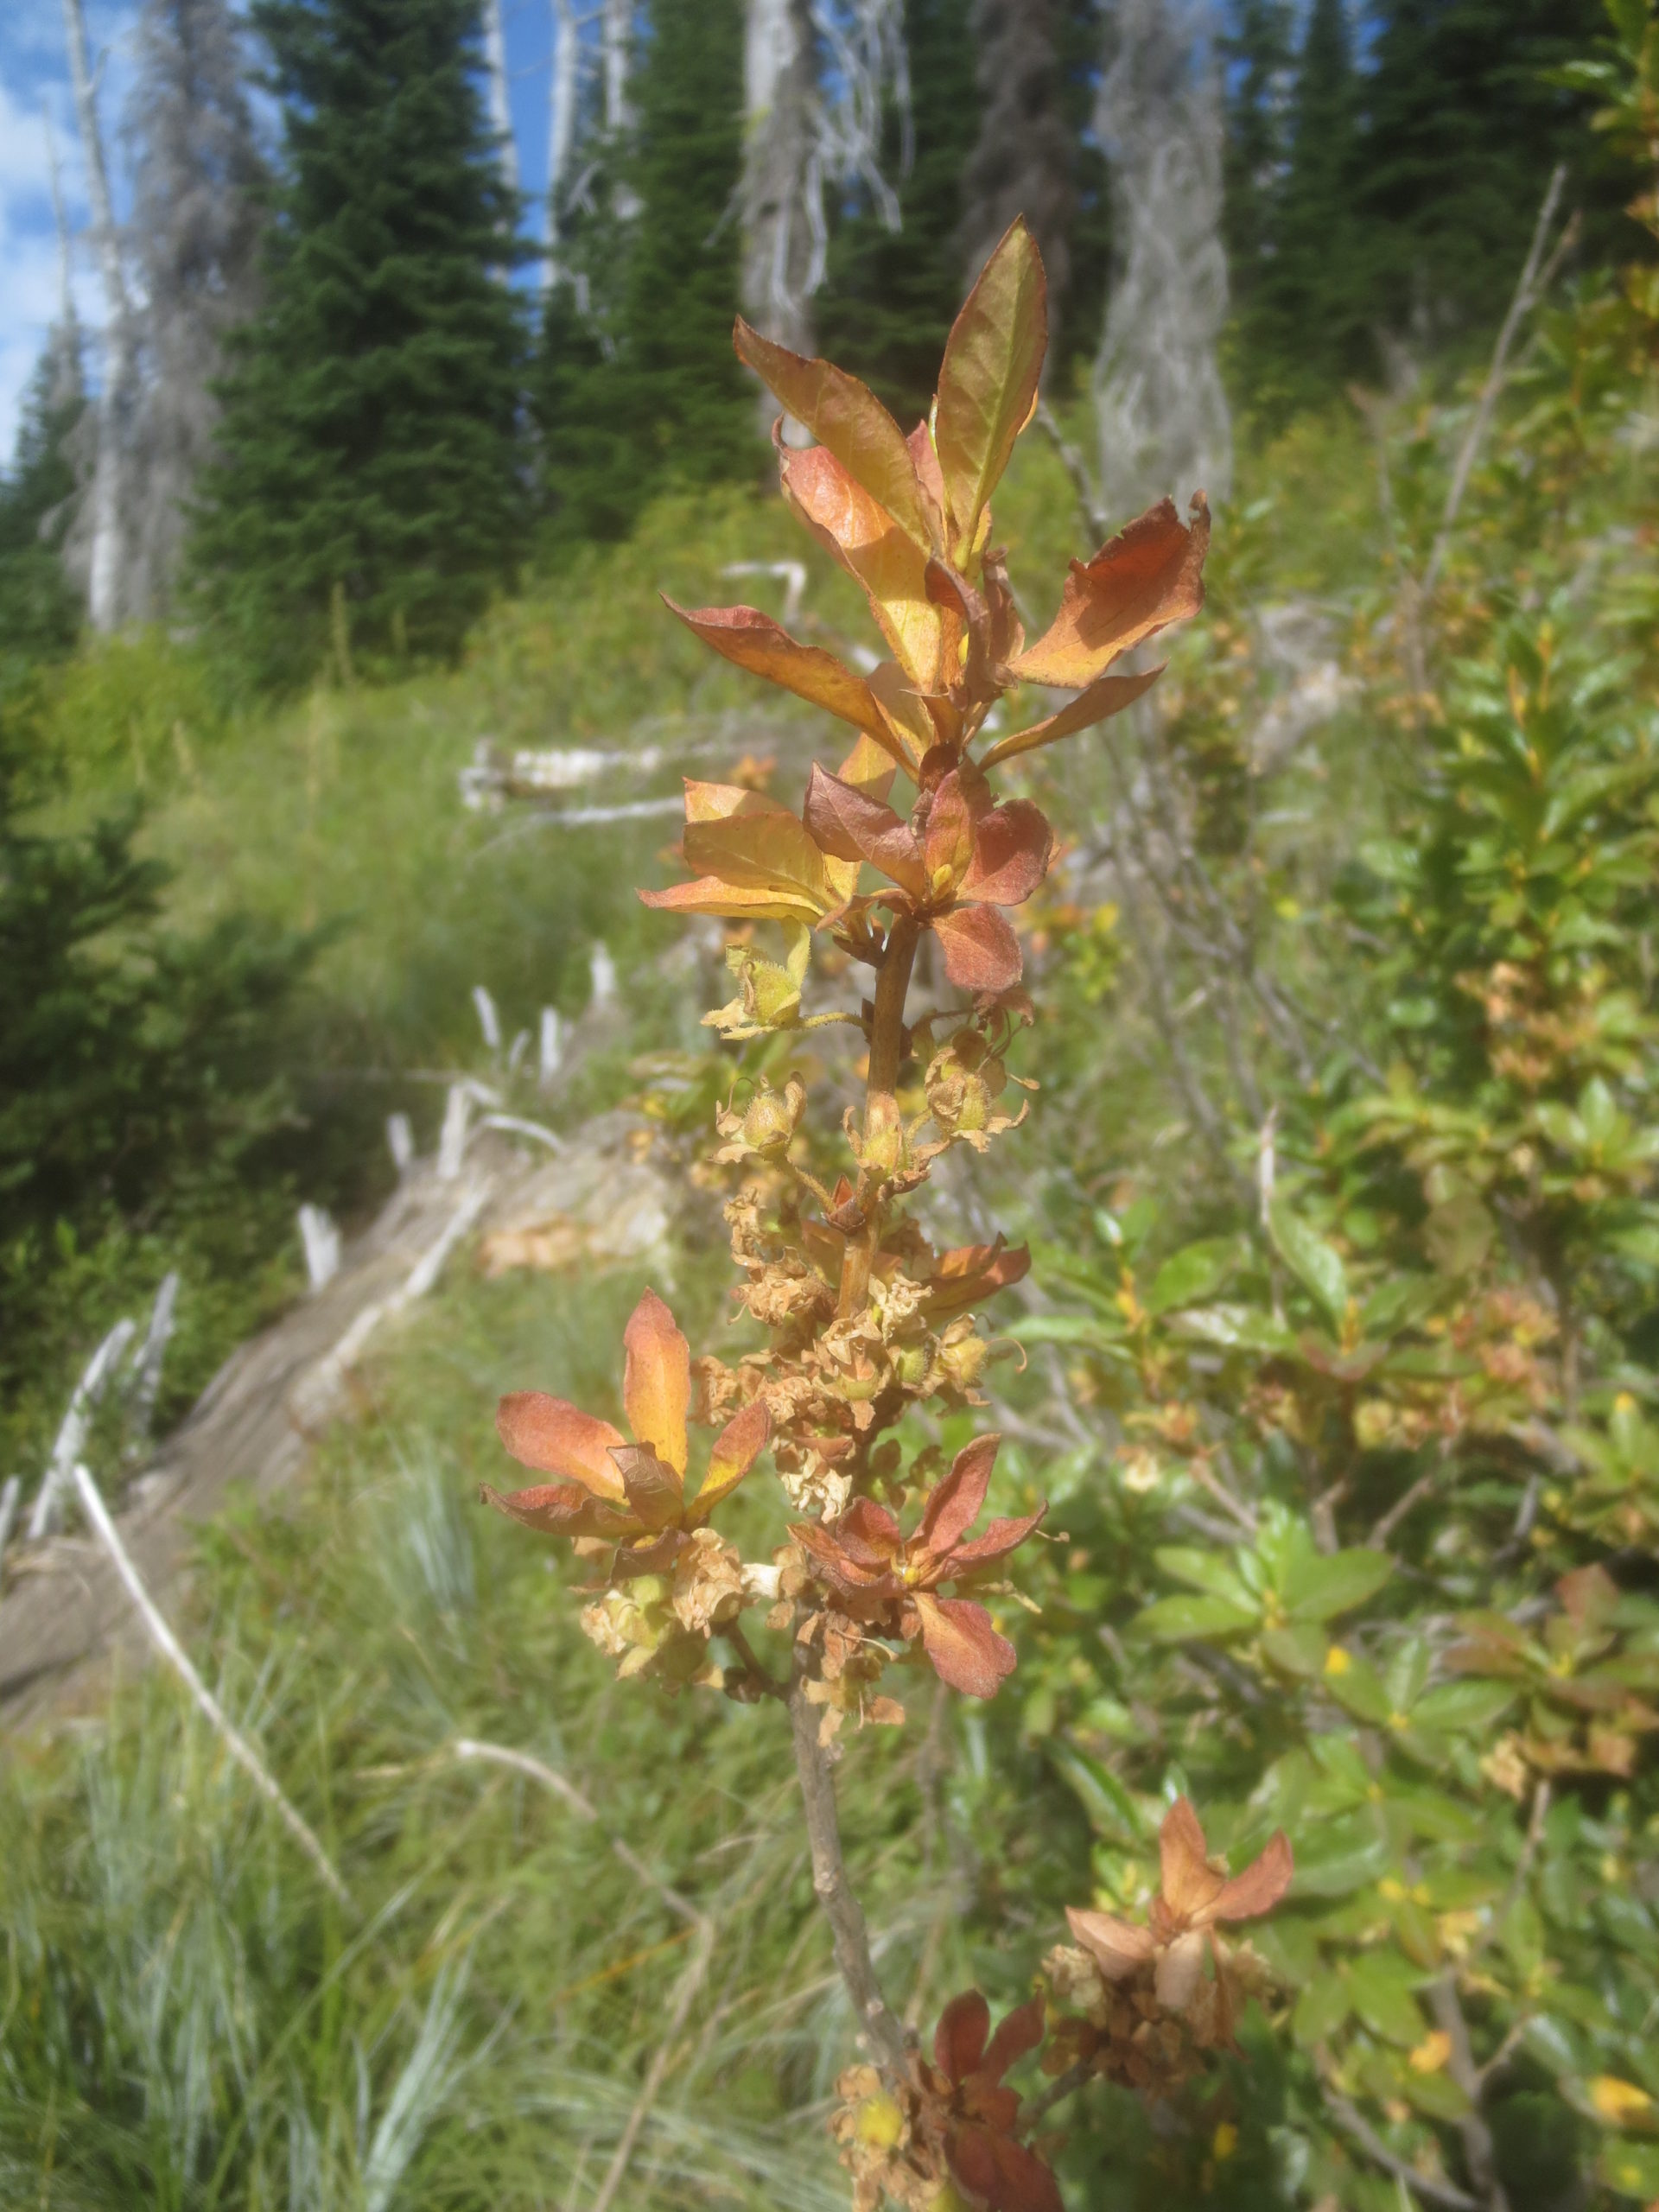 closeup of wildflower foilage turning autumnal colors